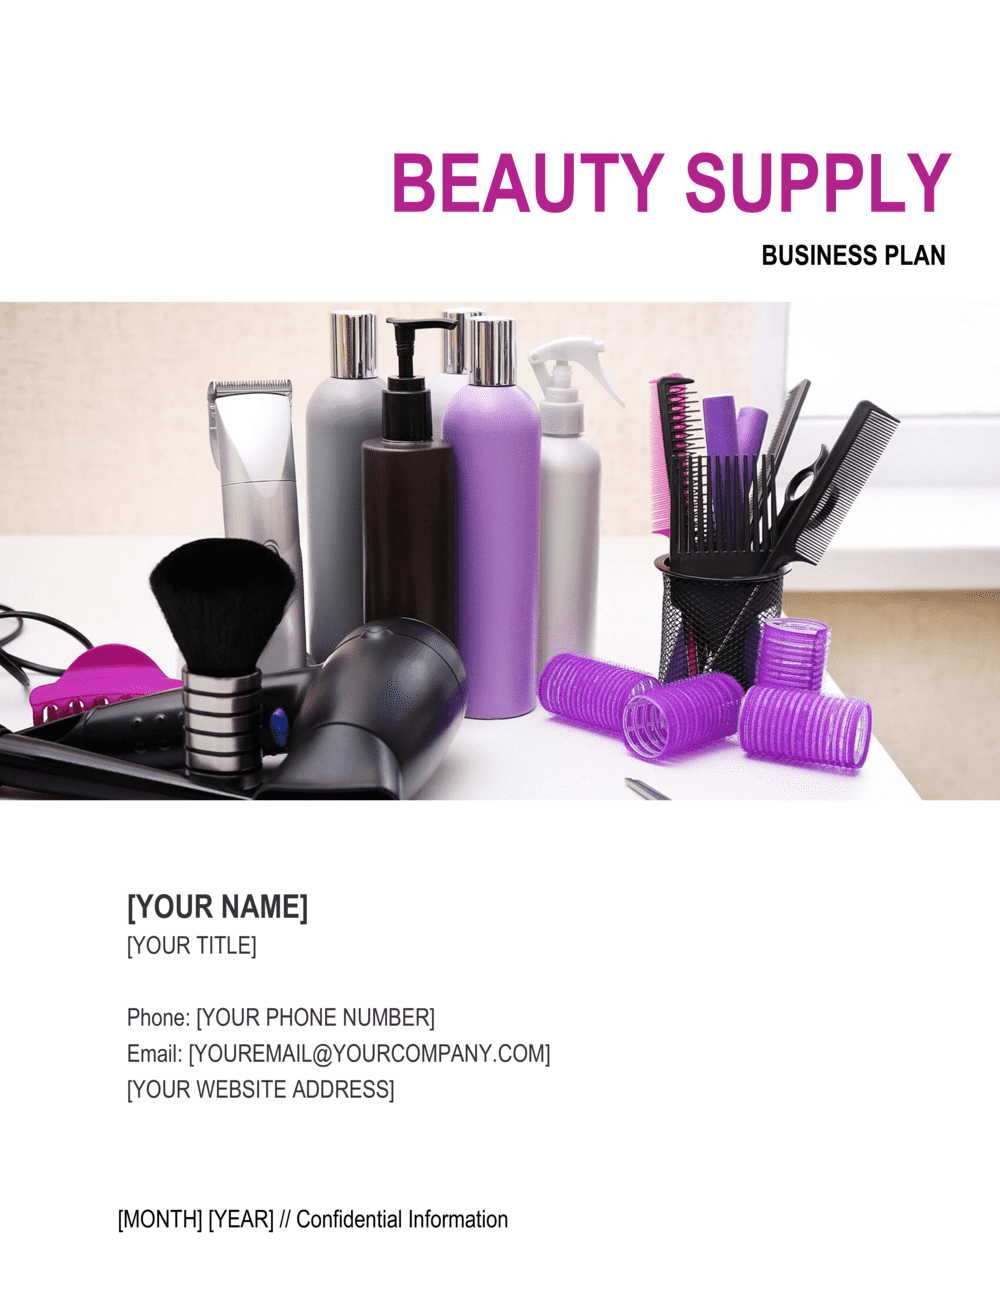 Business-in-a-Box's Beauty Supply Business Plan Template